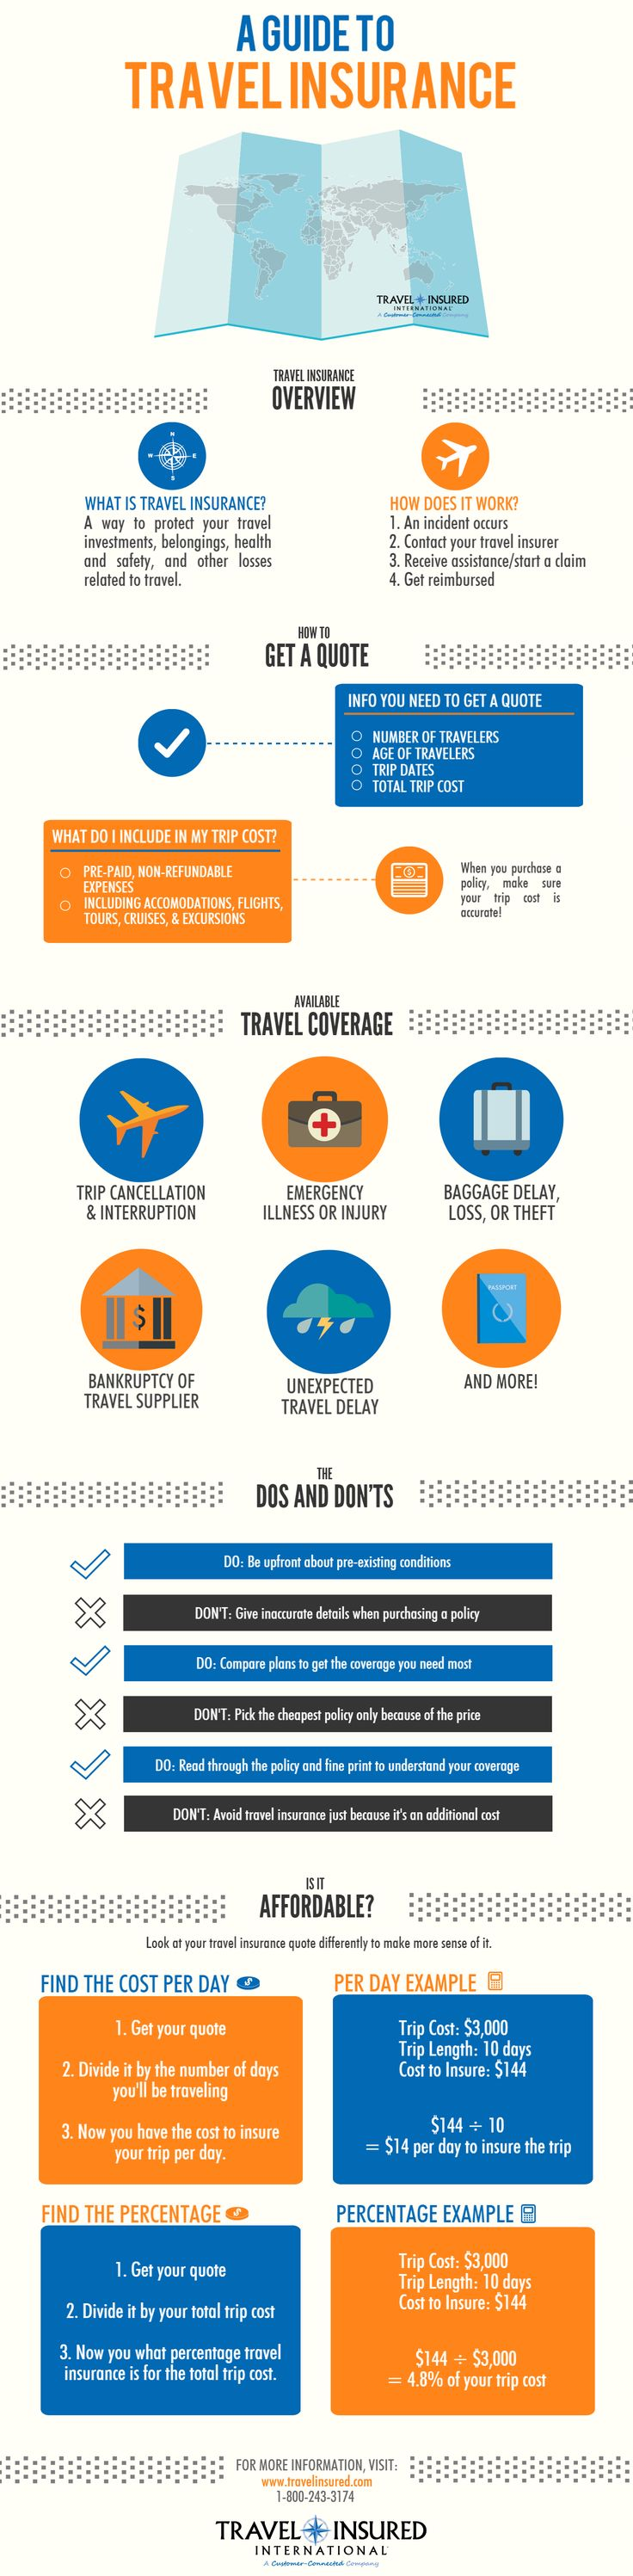 Think travel insurance is confusing? Think again! Check out this infographic Travel Insured has created to try and make the travel insurance process a bit easier to understand!